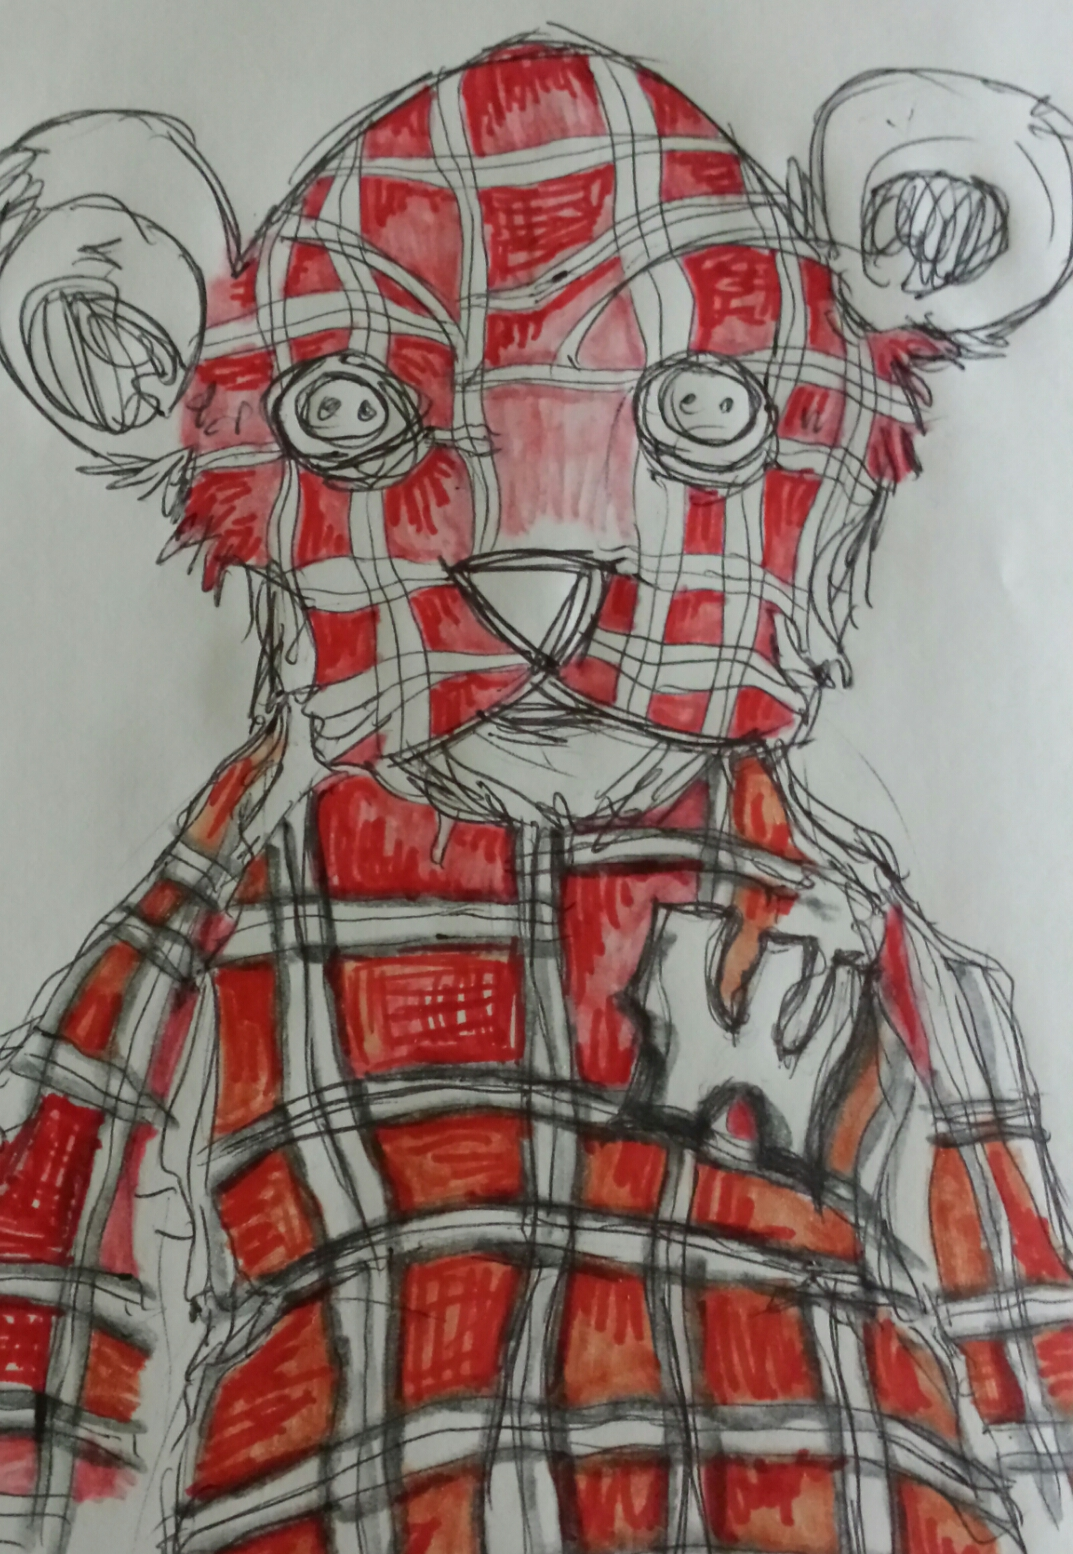 Plaid badger bear